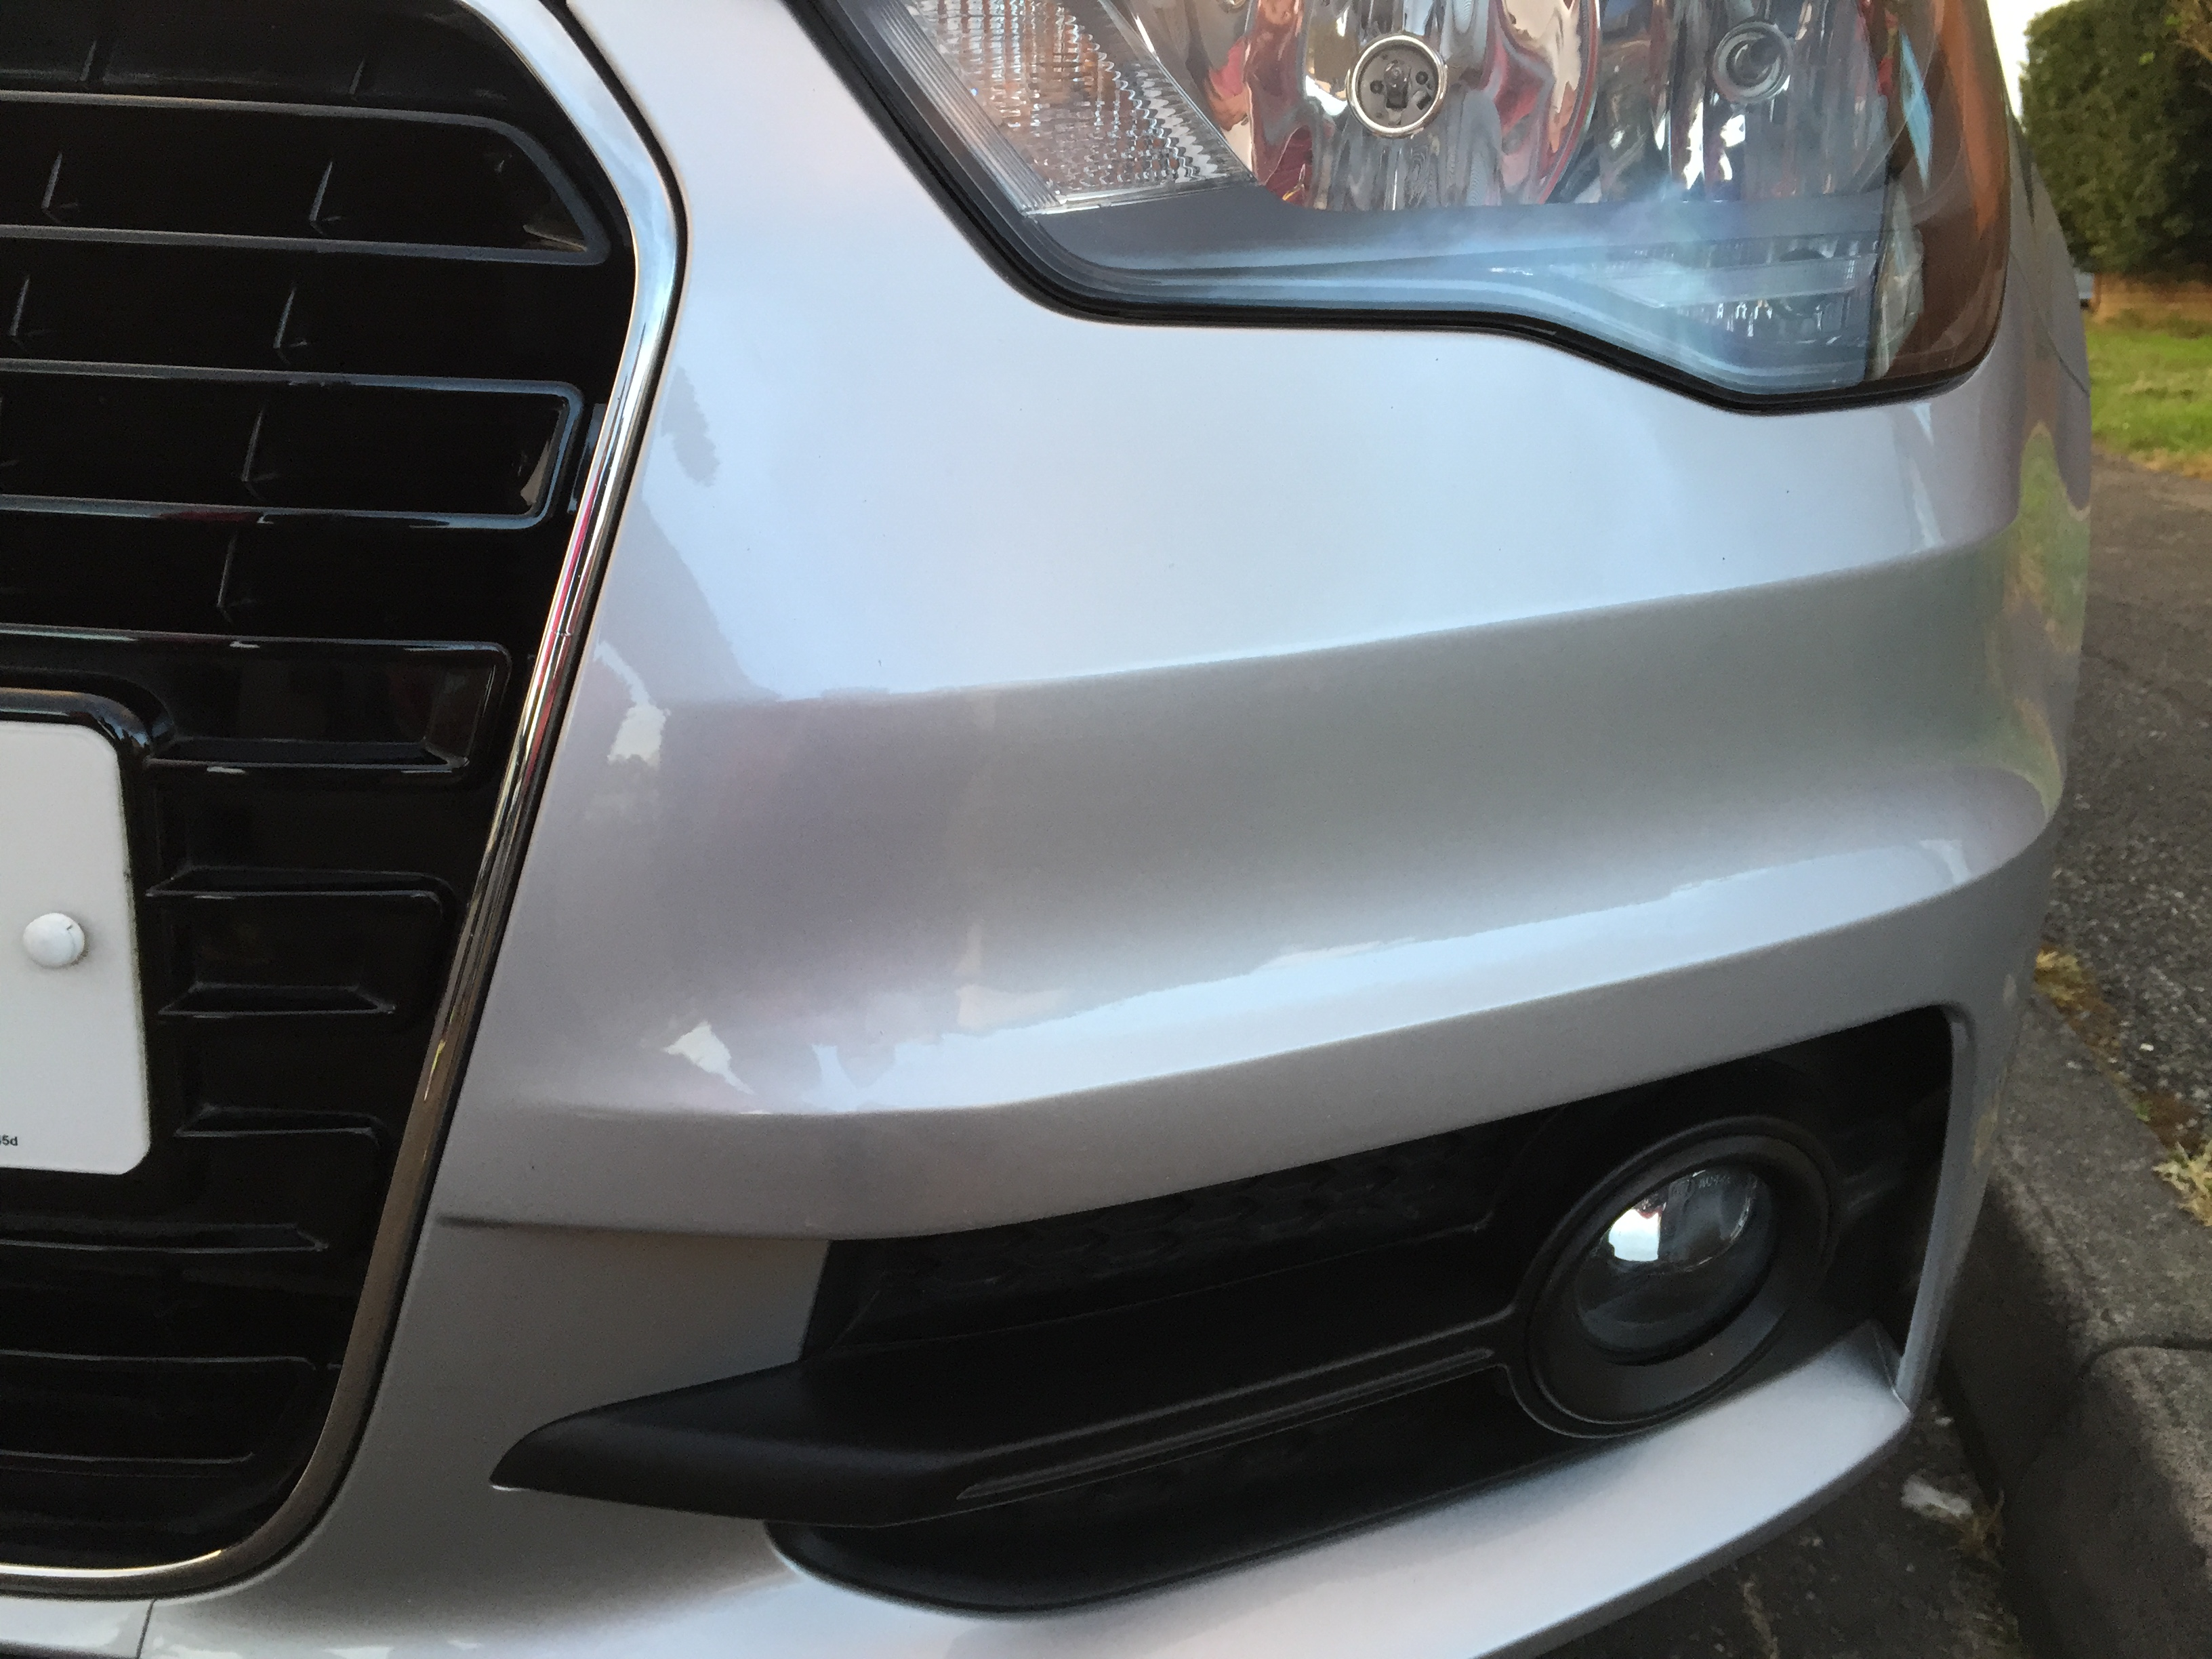 Car Repair Bumper scuffs, Paintwork Scratches & Minor dents – Audi A1